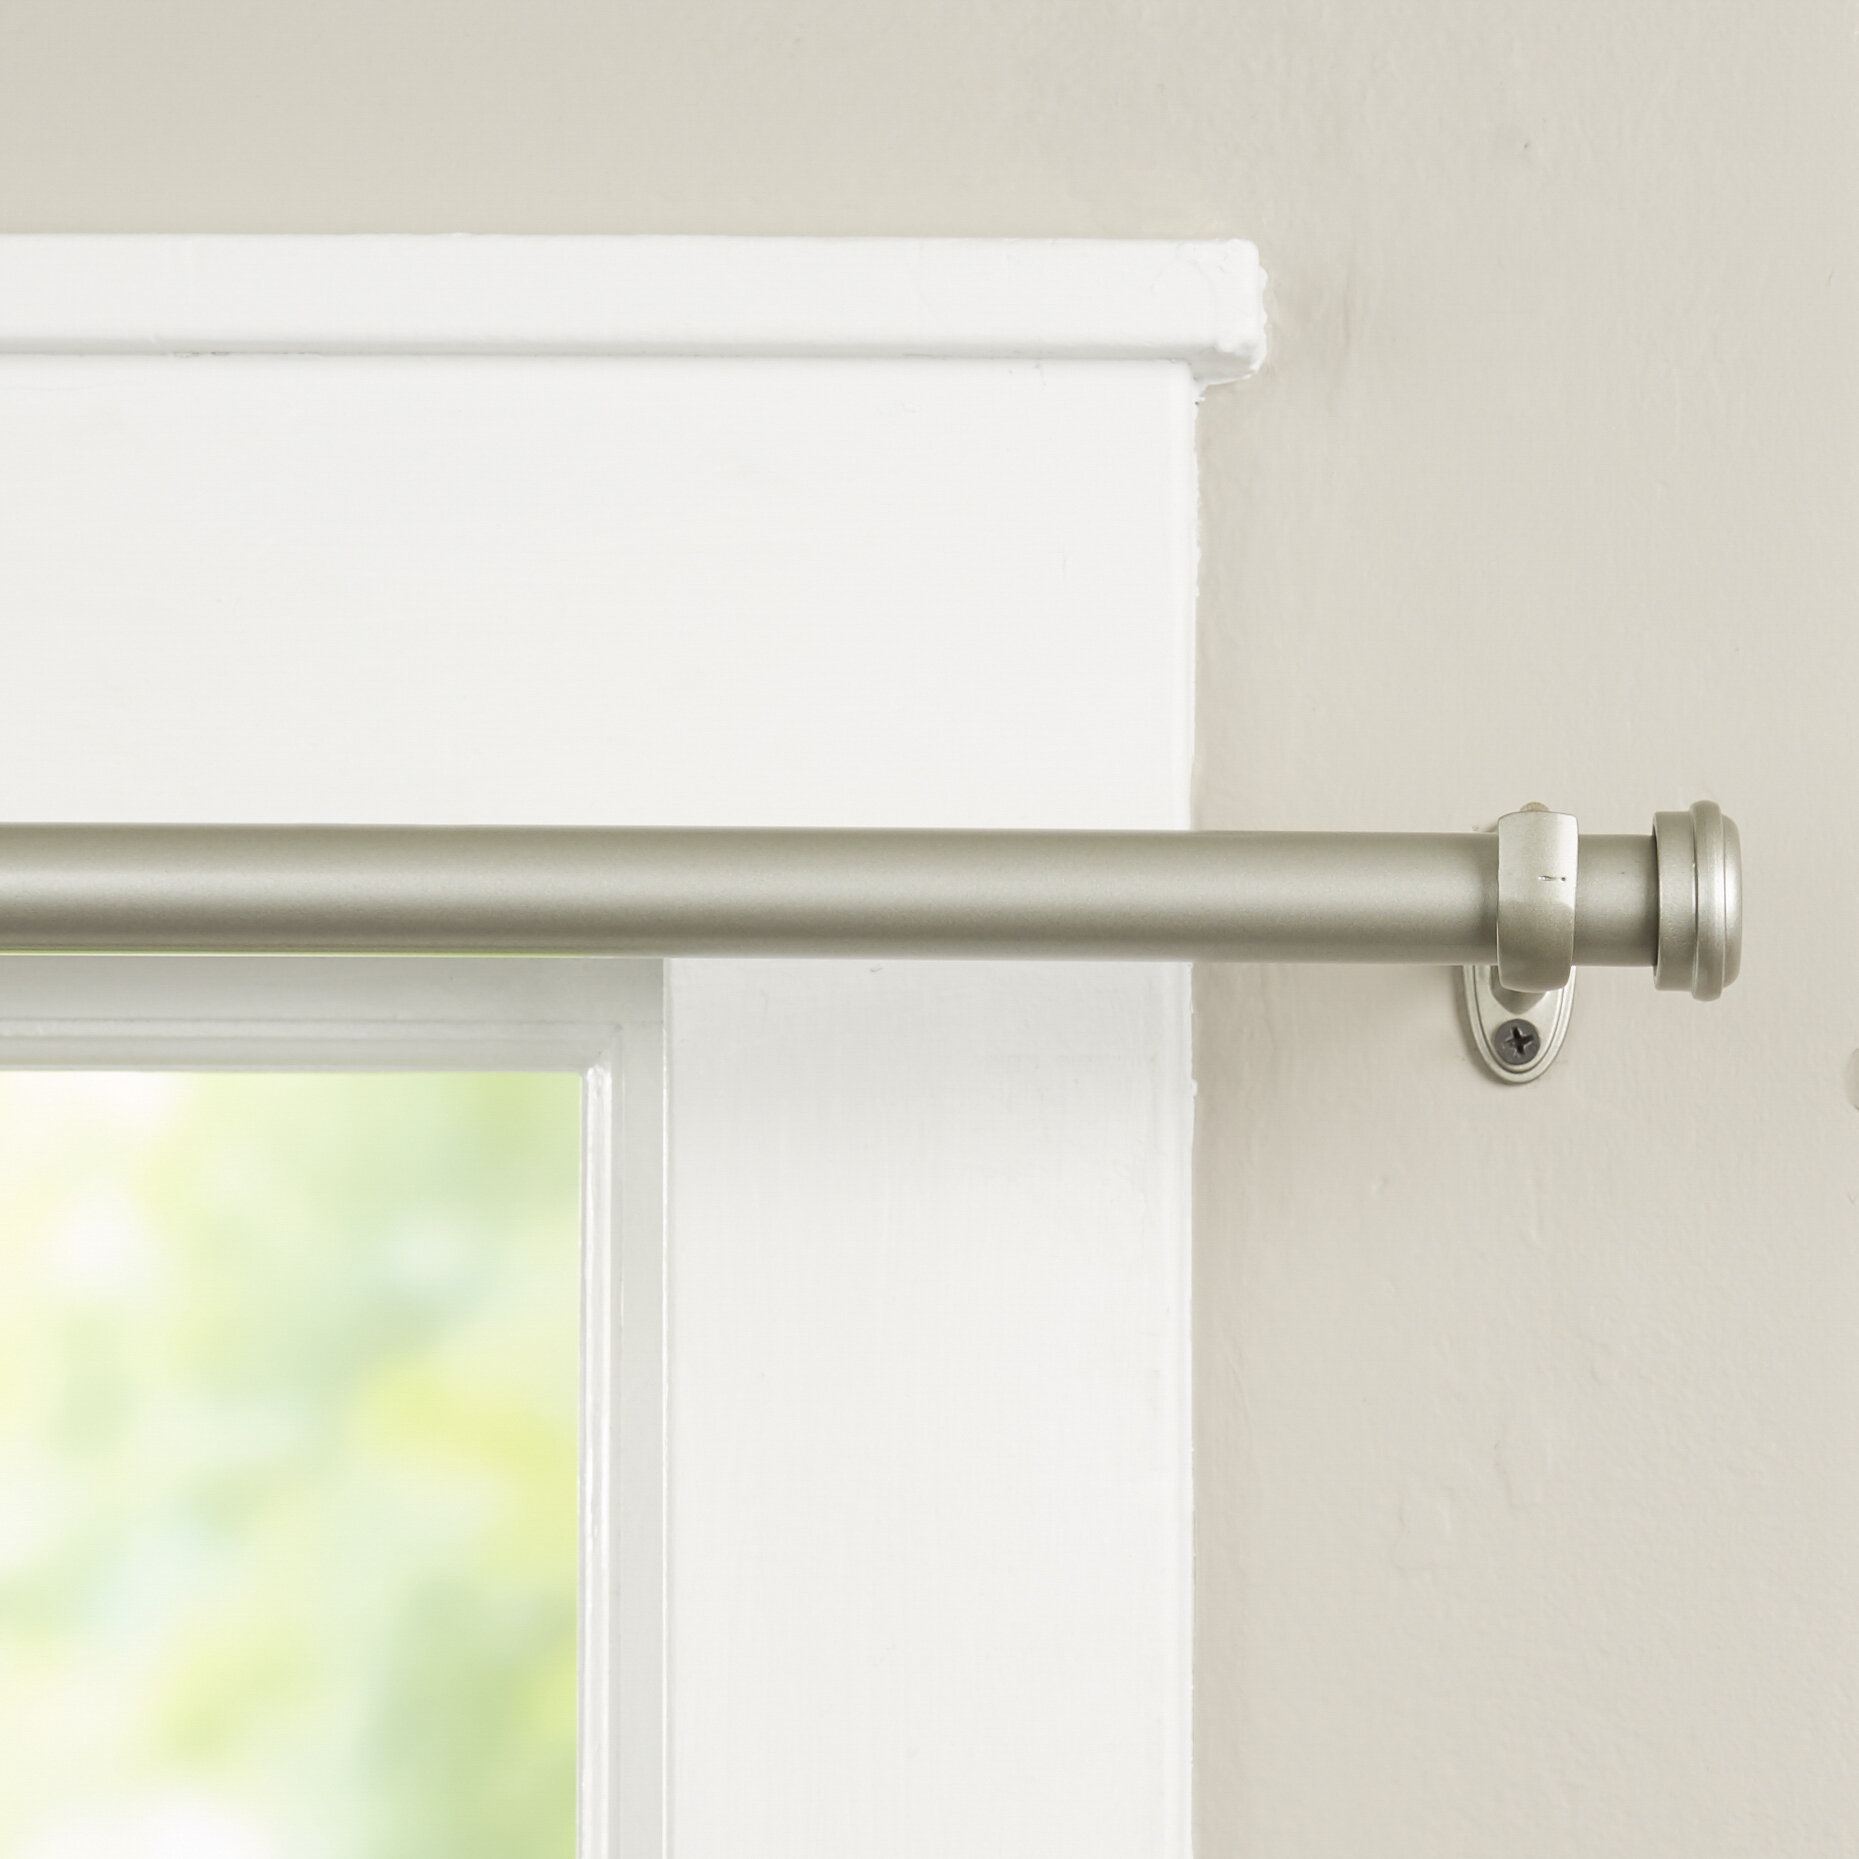 thin curtain full extra inspirations rail brackets cast of ends long size rod double white unforgettable iron rods window set pole